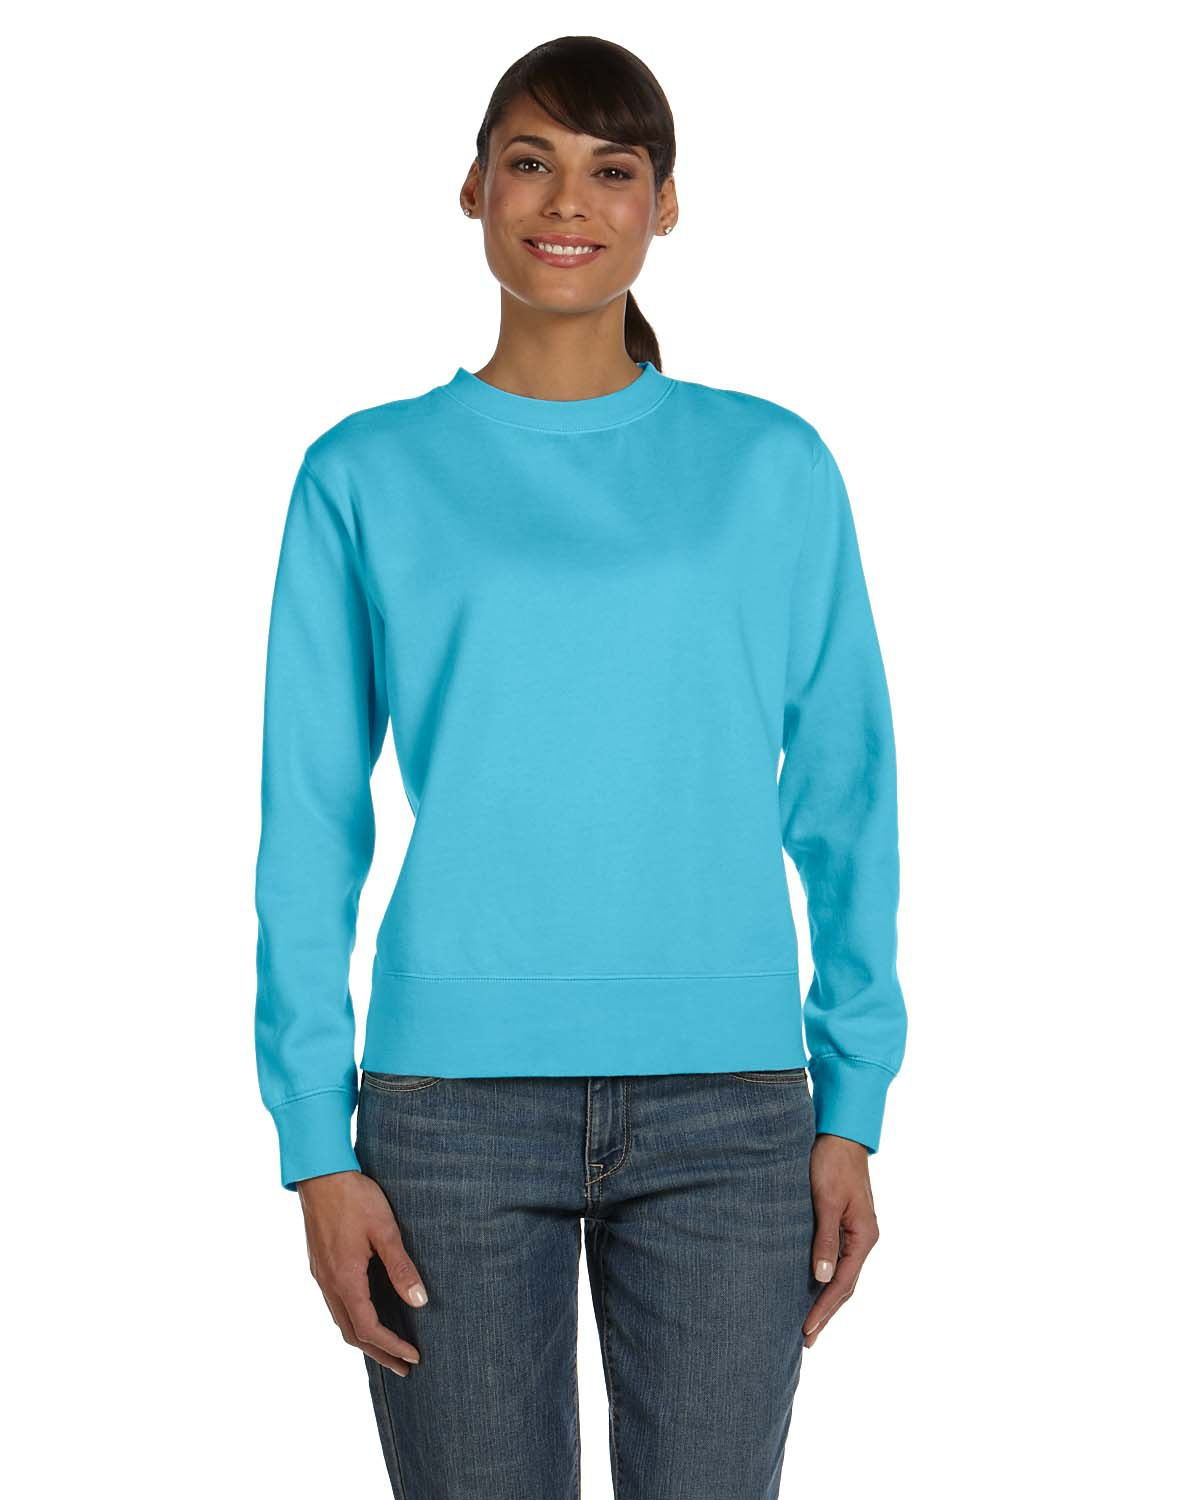 Comfort Colors 1596 - Garment Dyed Women's Crewneck Sweatshirt